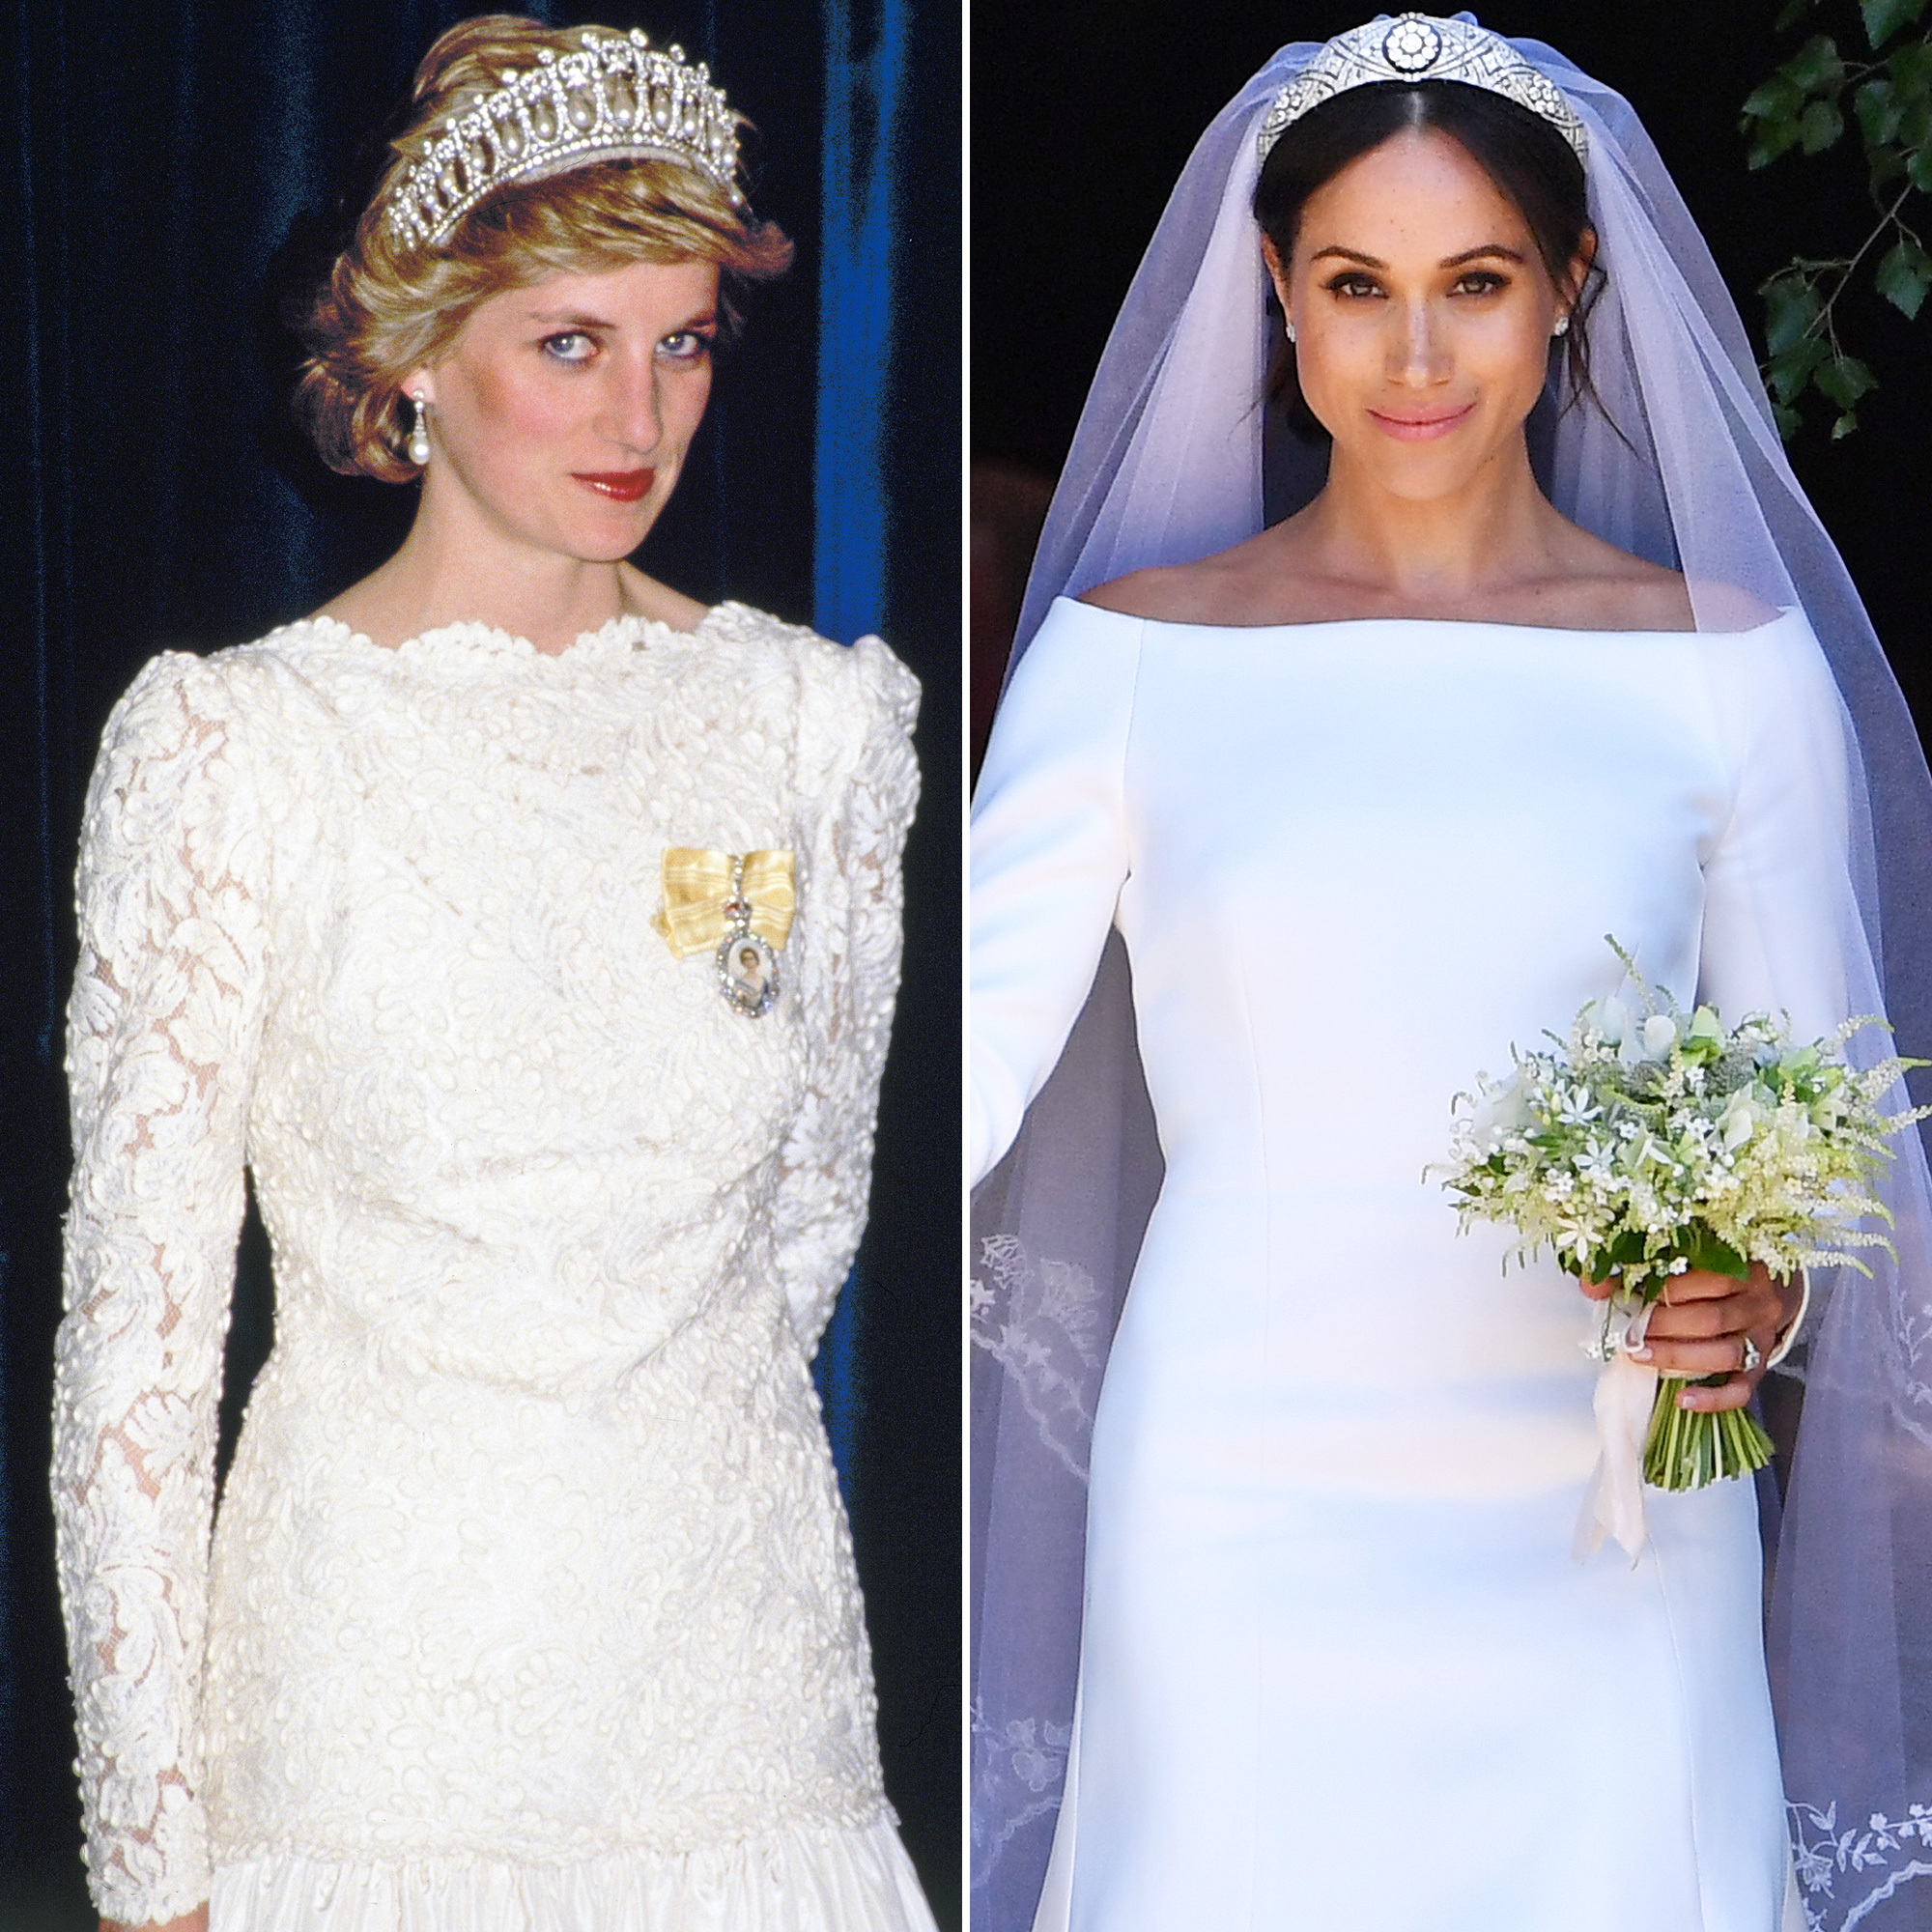 how princess diana was incorporated into the royal wedding princess diana was incorporated into